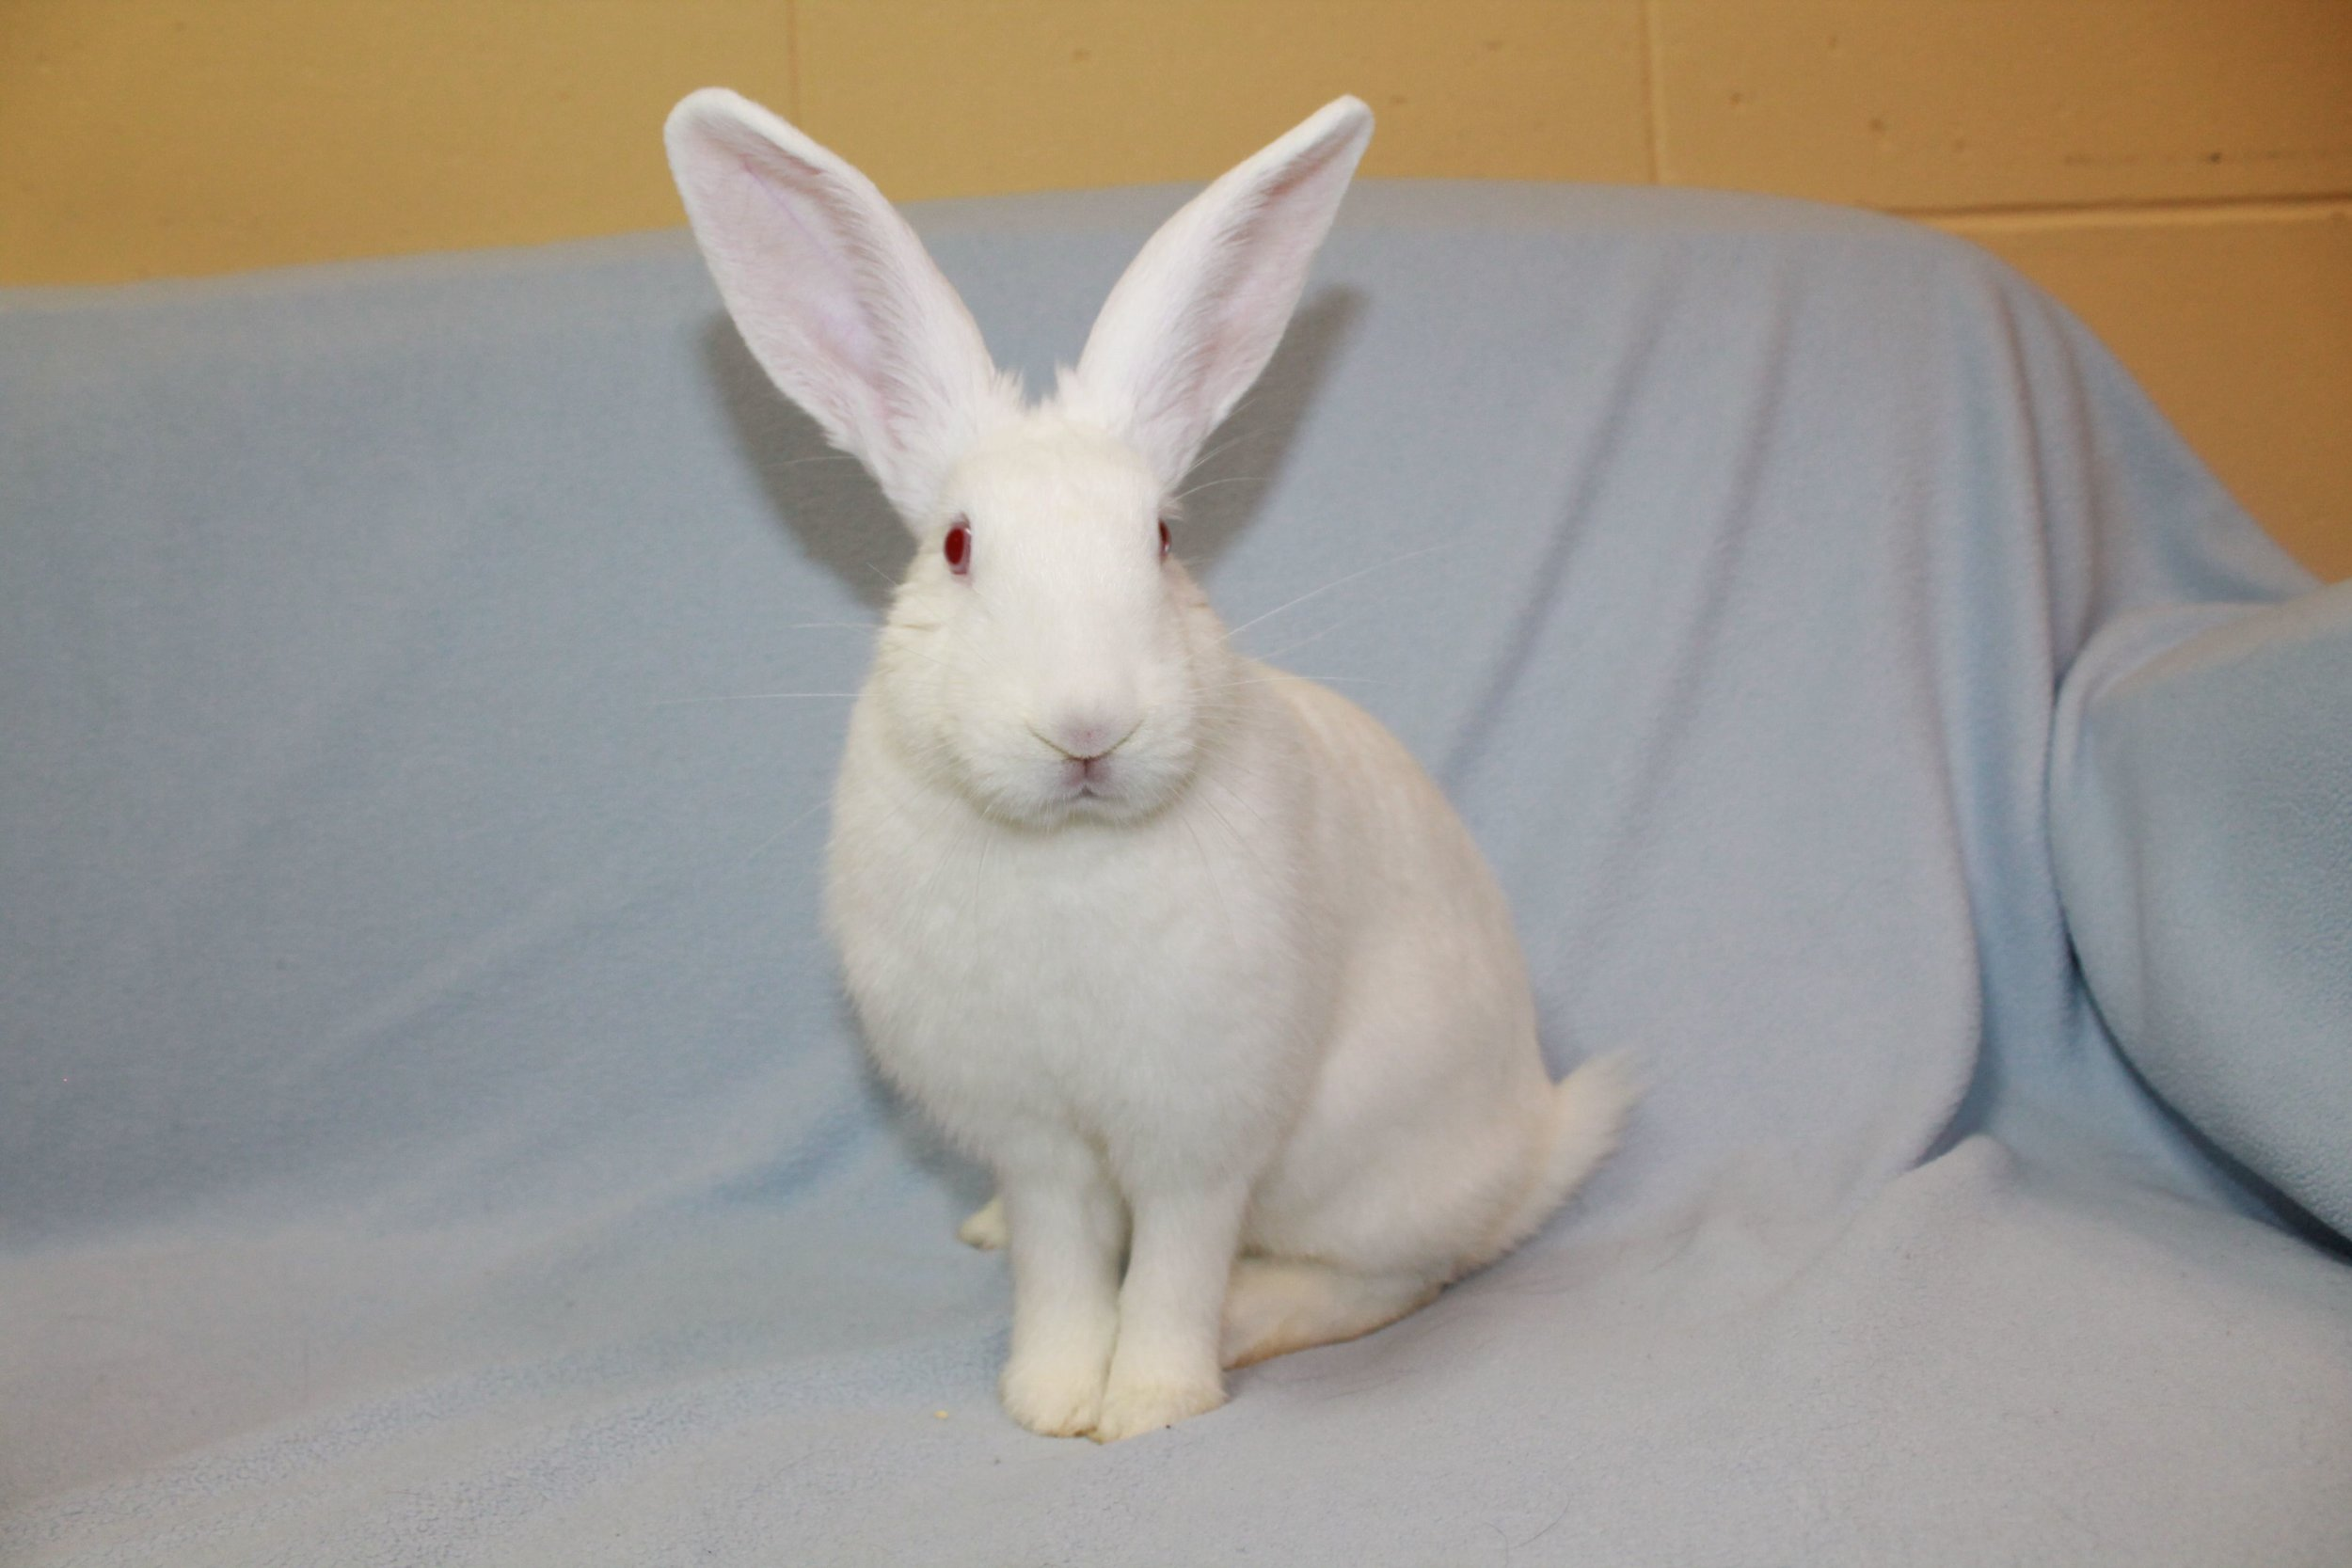 Ms. Wisconsin is a beautiful New Zealand rabbit that made the journey to HAWS from Alabama in hopes of finding her forever home. She is a sweet southern girl. She is pure with pretty ruby eyes! She is very friendly and enjoys attention. She is a social butterfly and loves hanging with all humans and enjoy loving pets!  She even seems to enjoy the attention of children and would do well with them (supervised interactions, of course). She will make a wonderful life-long companion that will bring much happiness into your home.